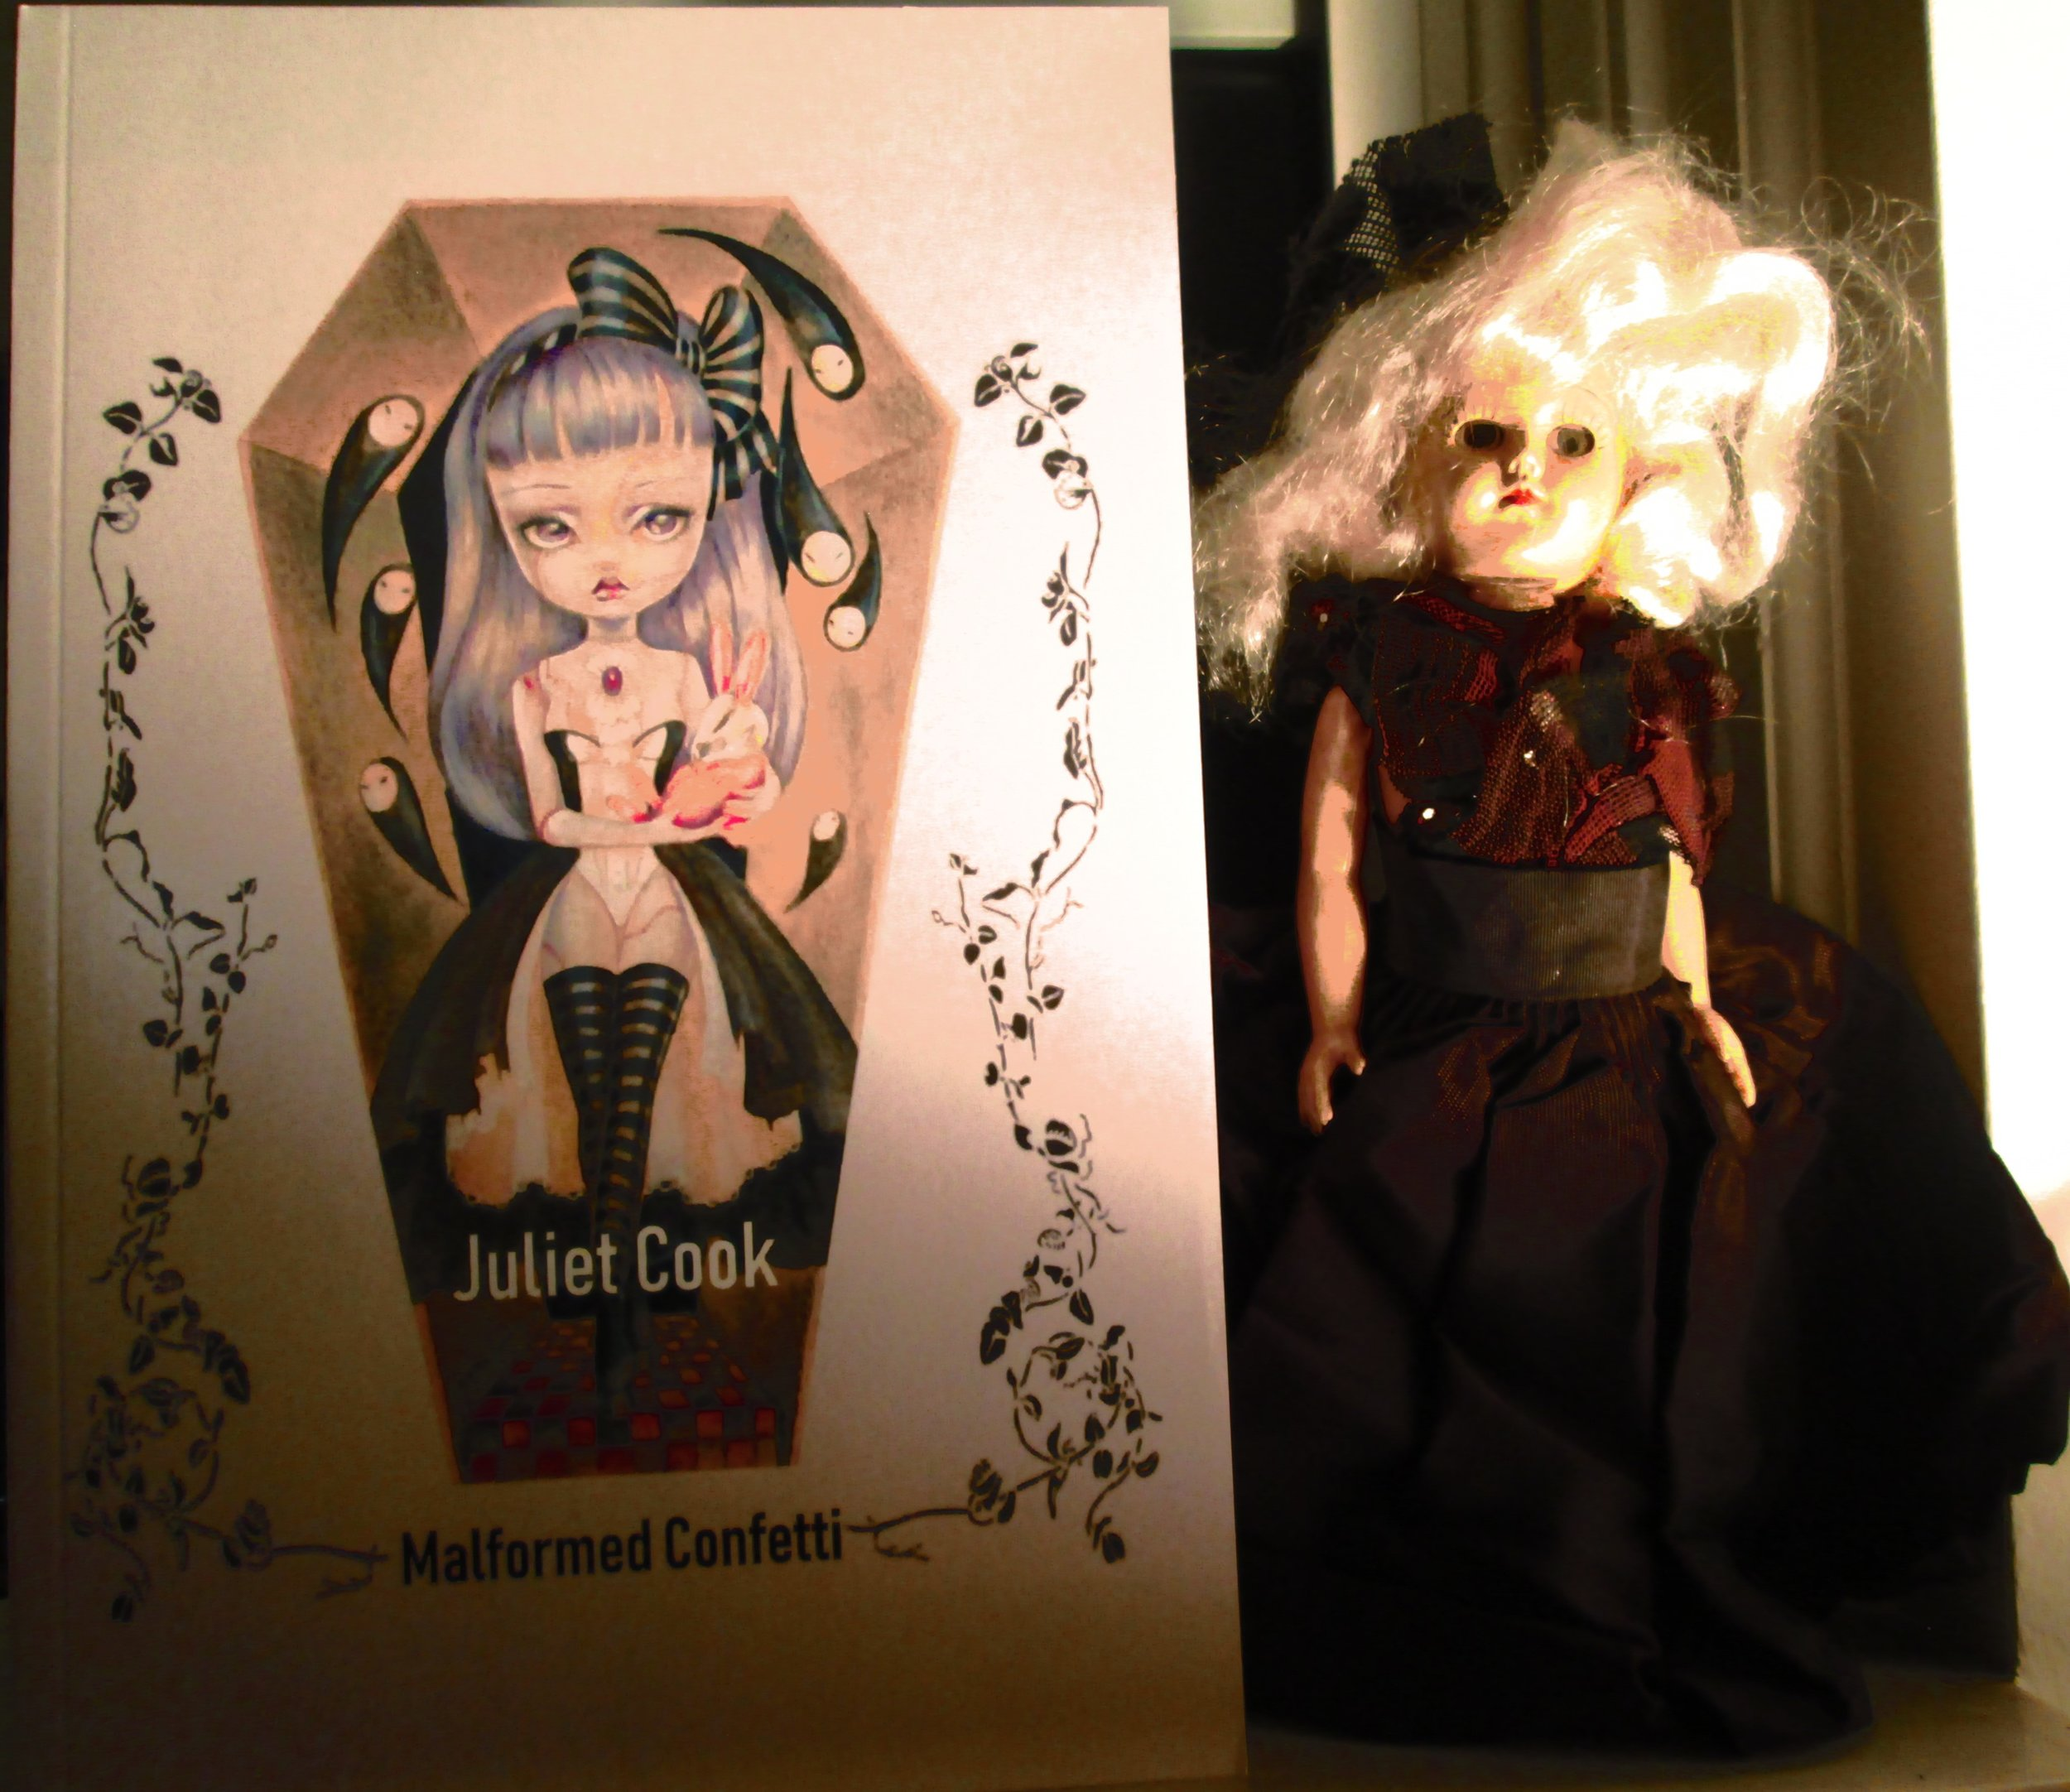 - Purchase Malformed Confettifrom Crisis Chronicles Press, Amazon, or on Etsy.